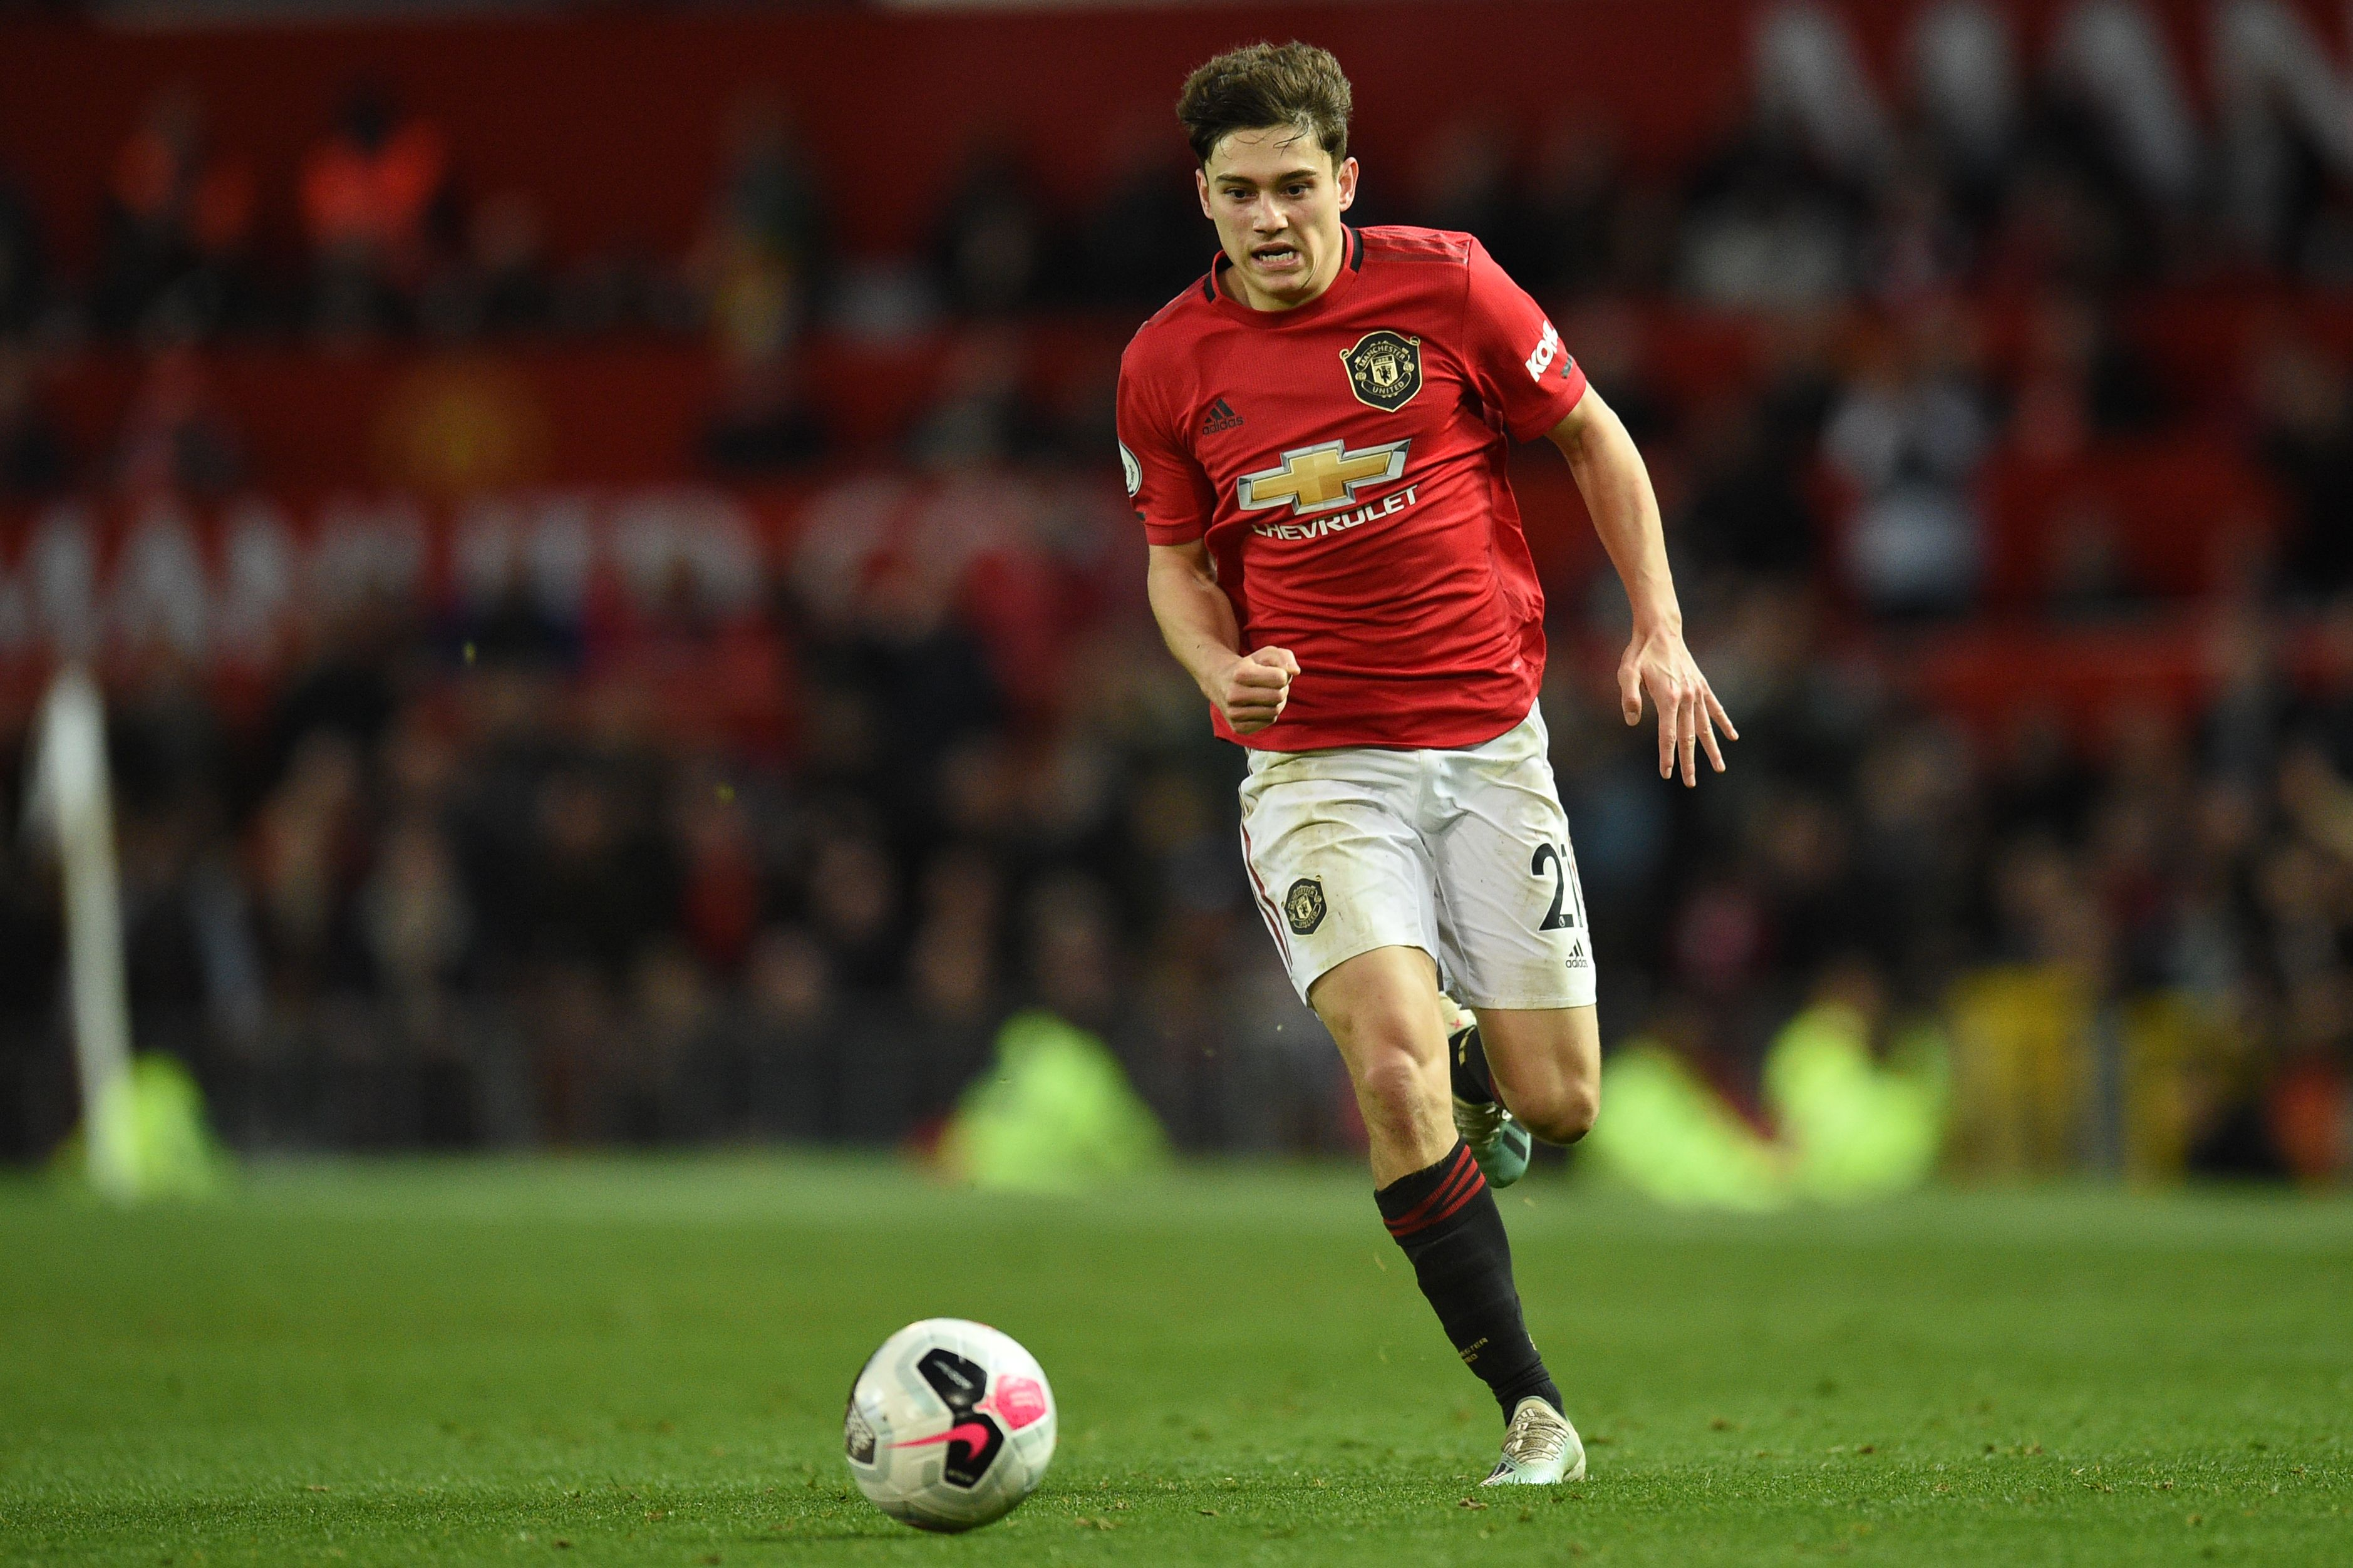 Ryan Giggs has compared Daniel James to Cristiano Ronaldo (Photo by OLI SCARFF/AFP via Getty Images)